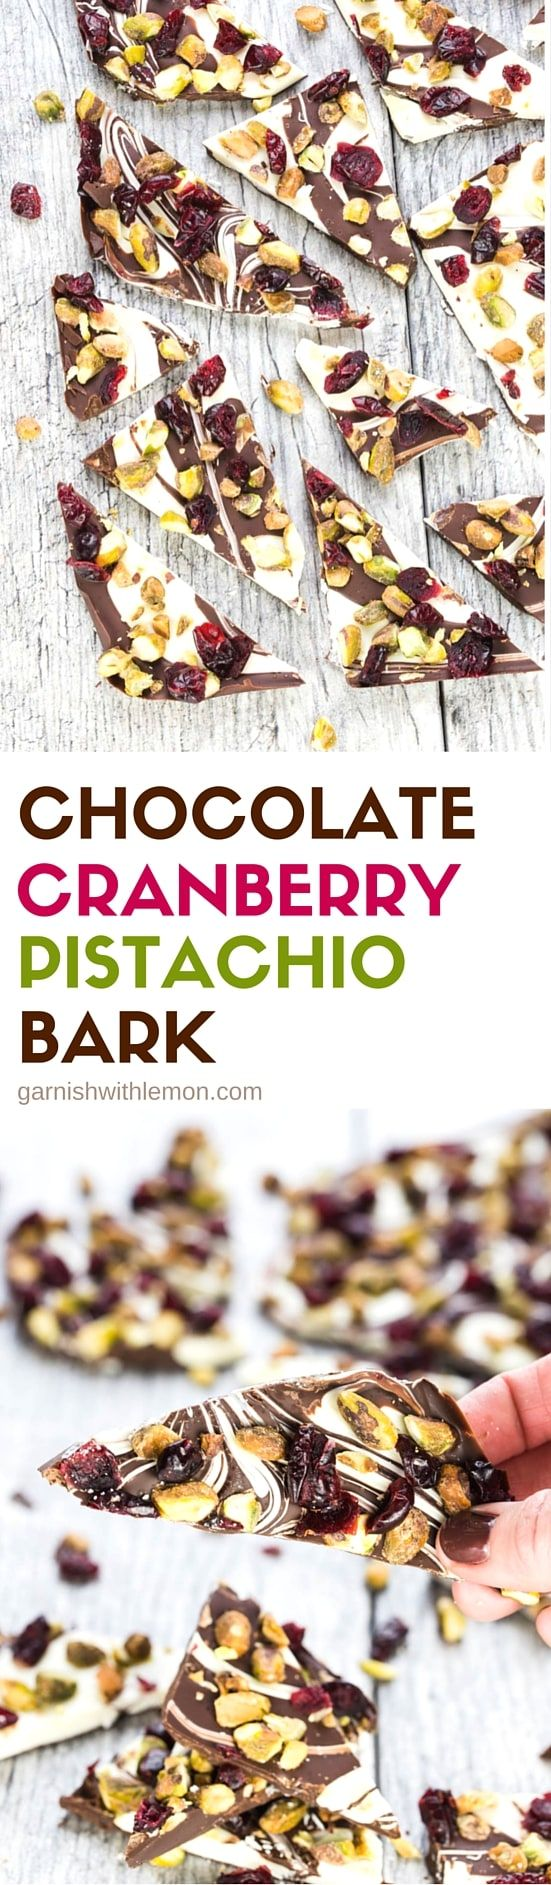 How can you go wrong with a 4 ingredient holiday sweet? Not only is this Chocolate Cranberry Pistachio Bark delicious, it takes just a few minutes to pull together.